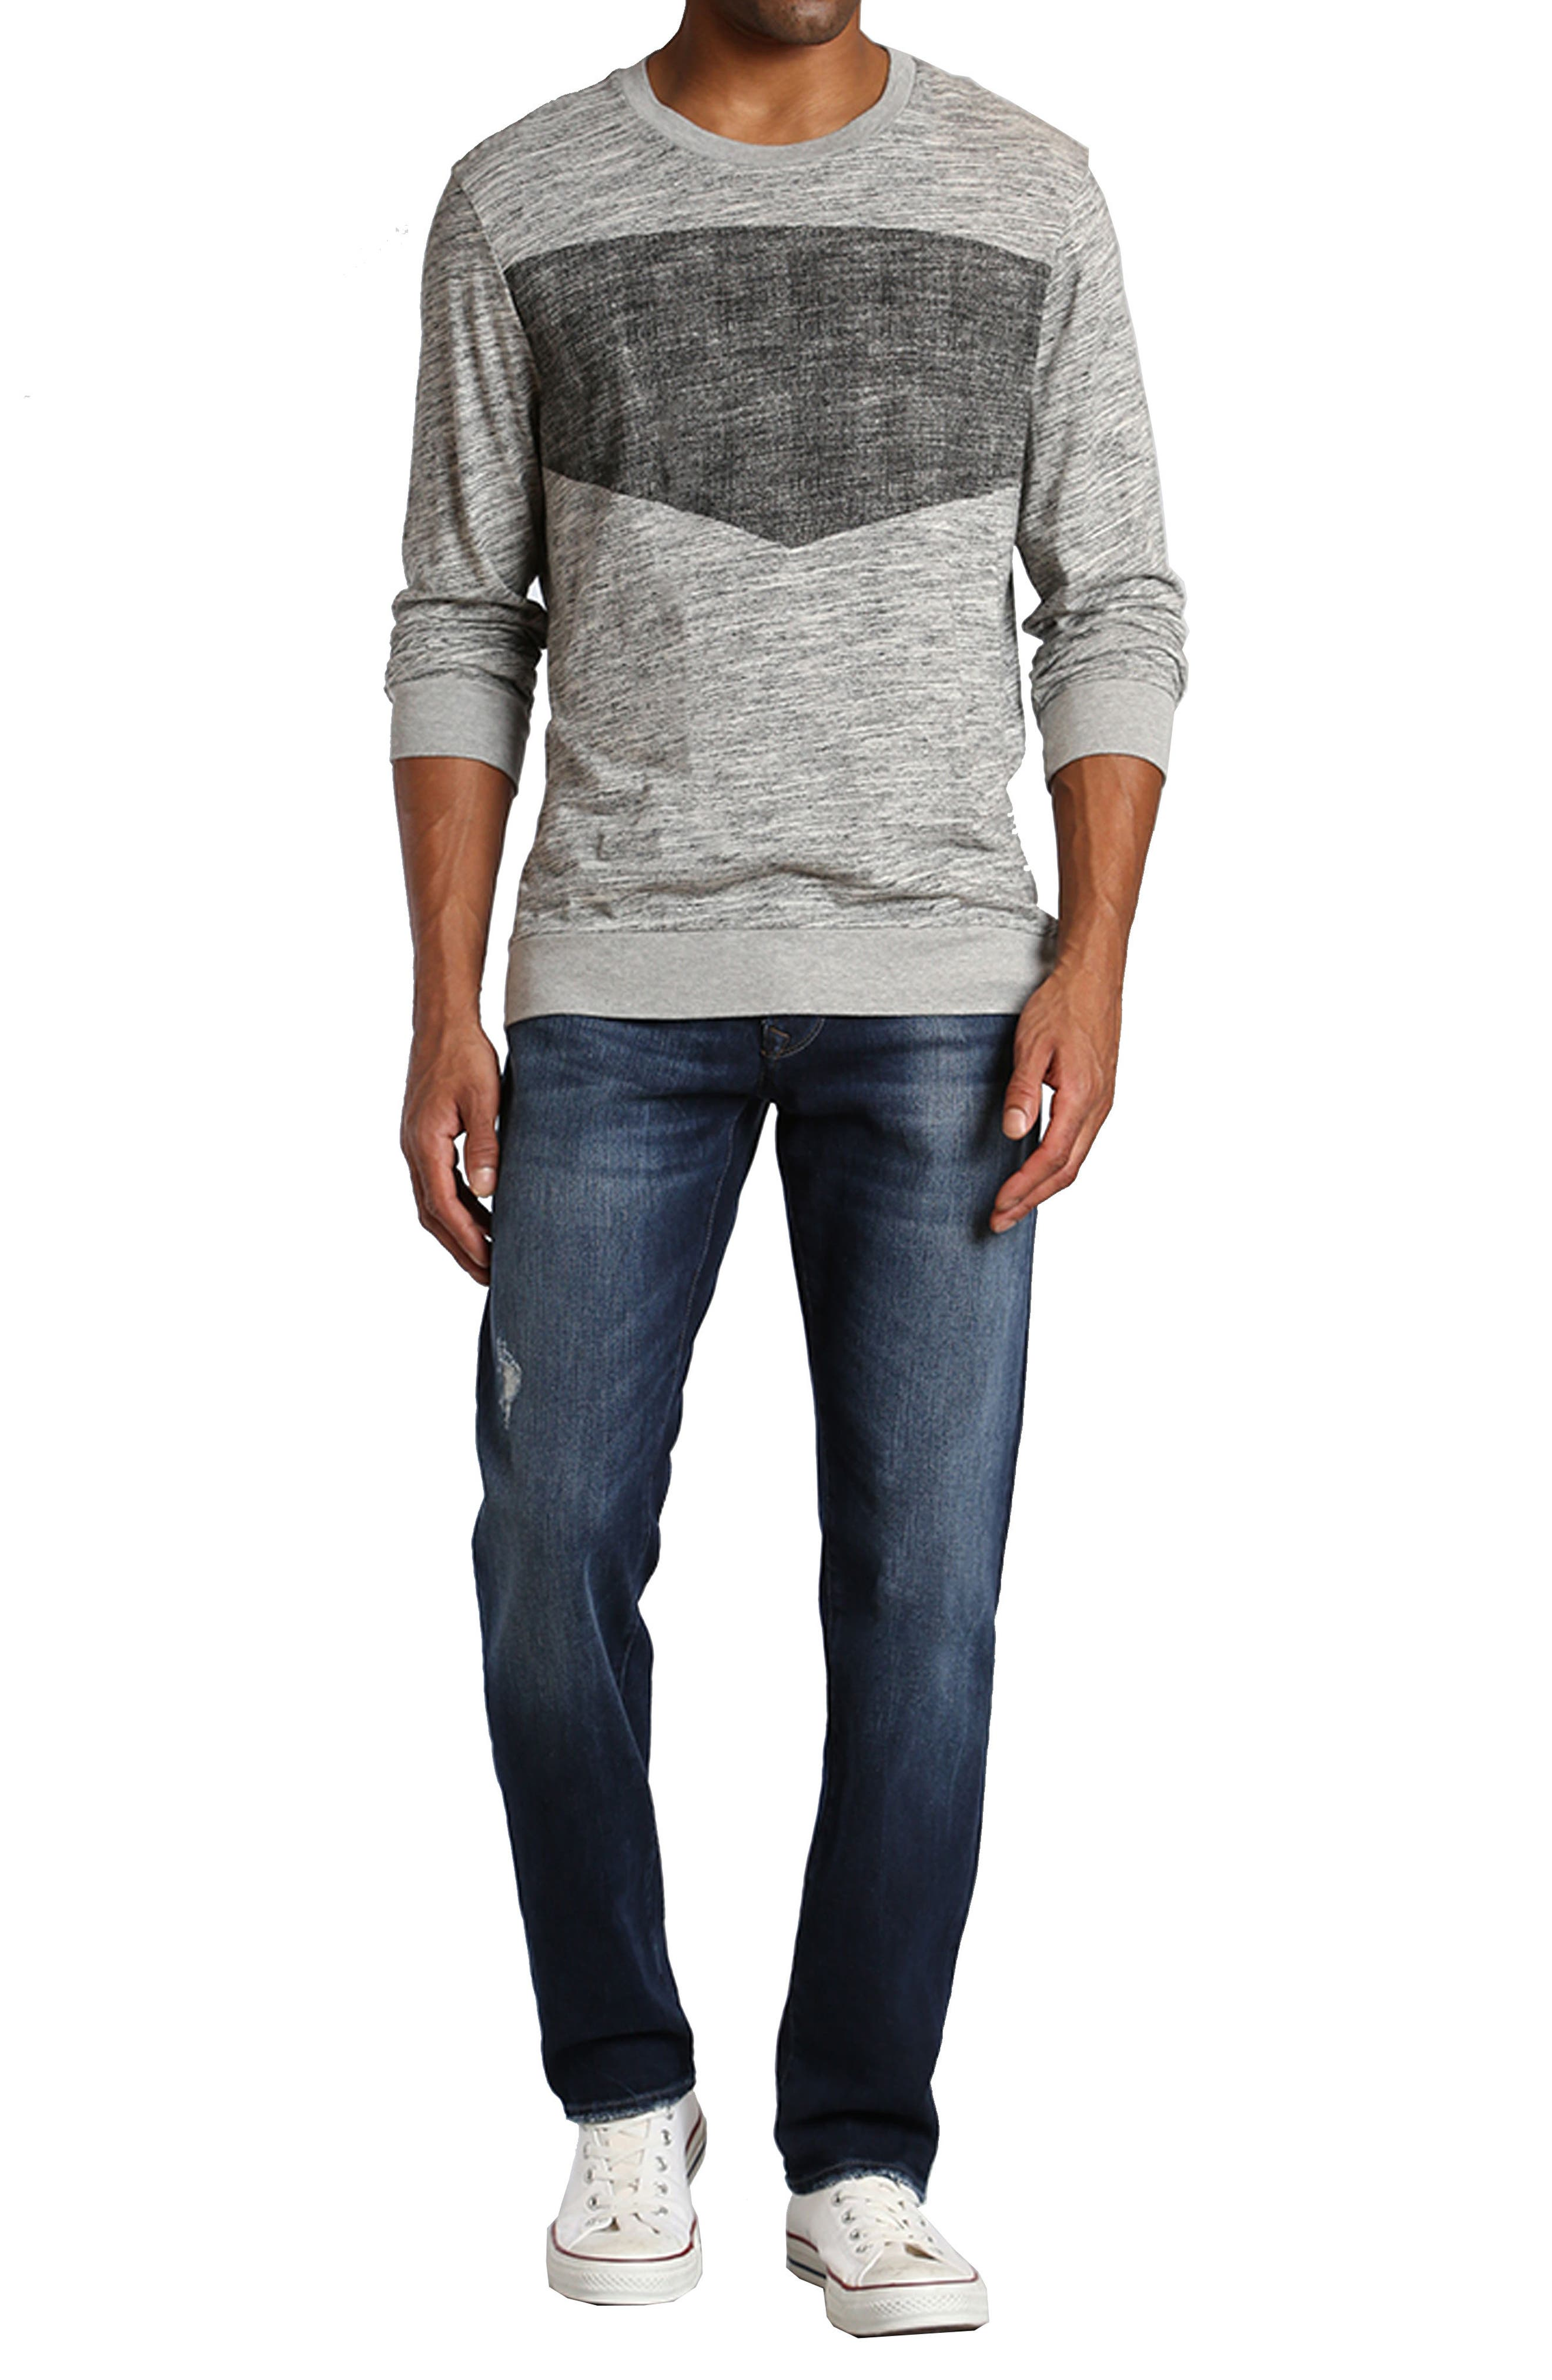 Marcus Slim Straight Leg Jeans,                             Alternate thumbnail 7, color,                             401